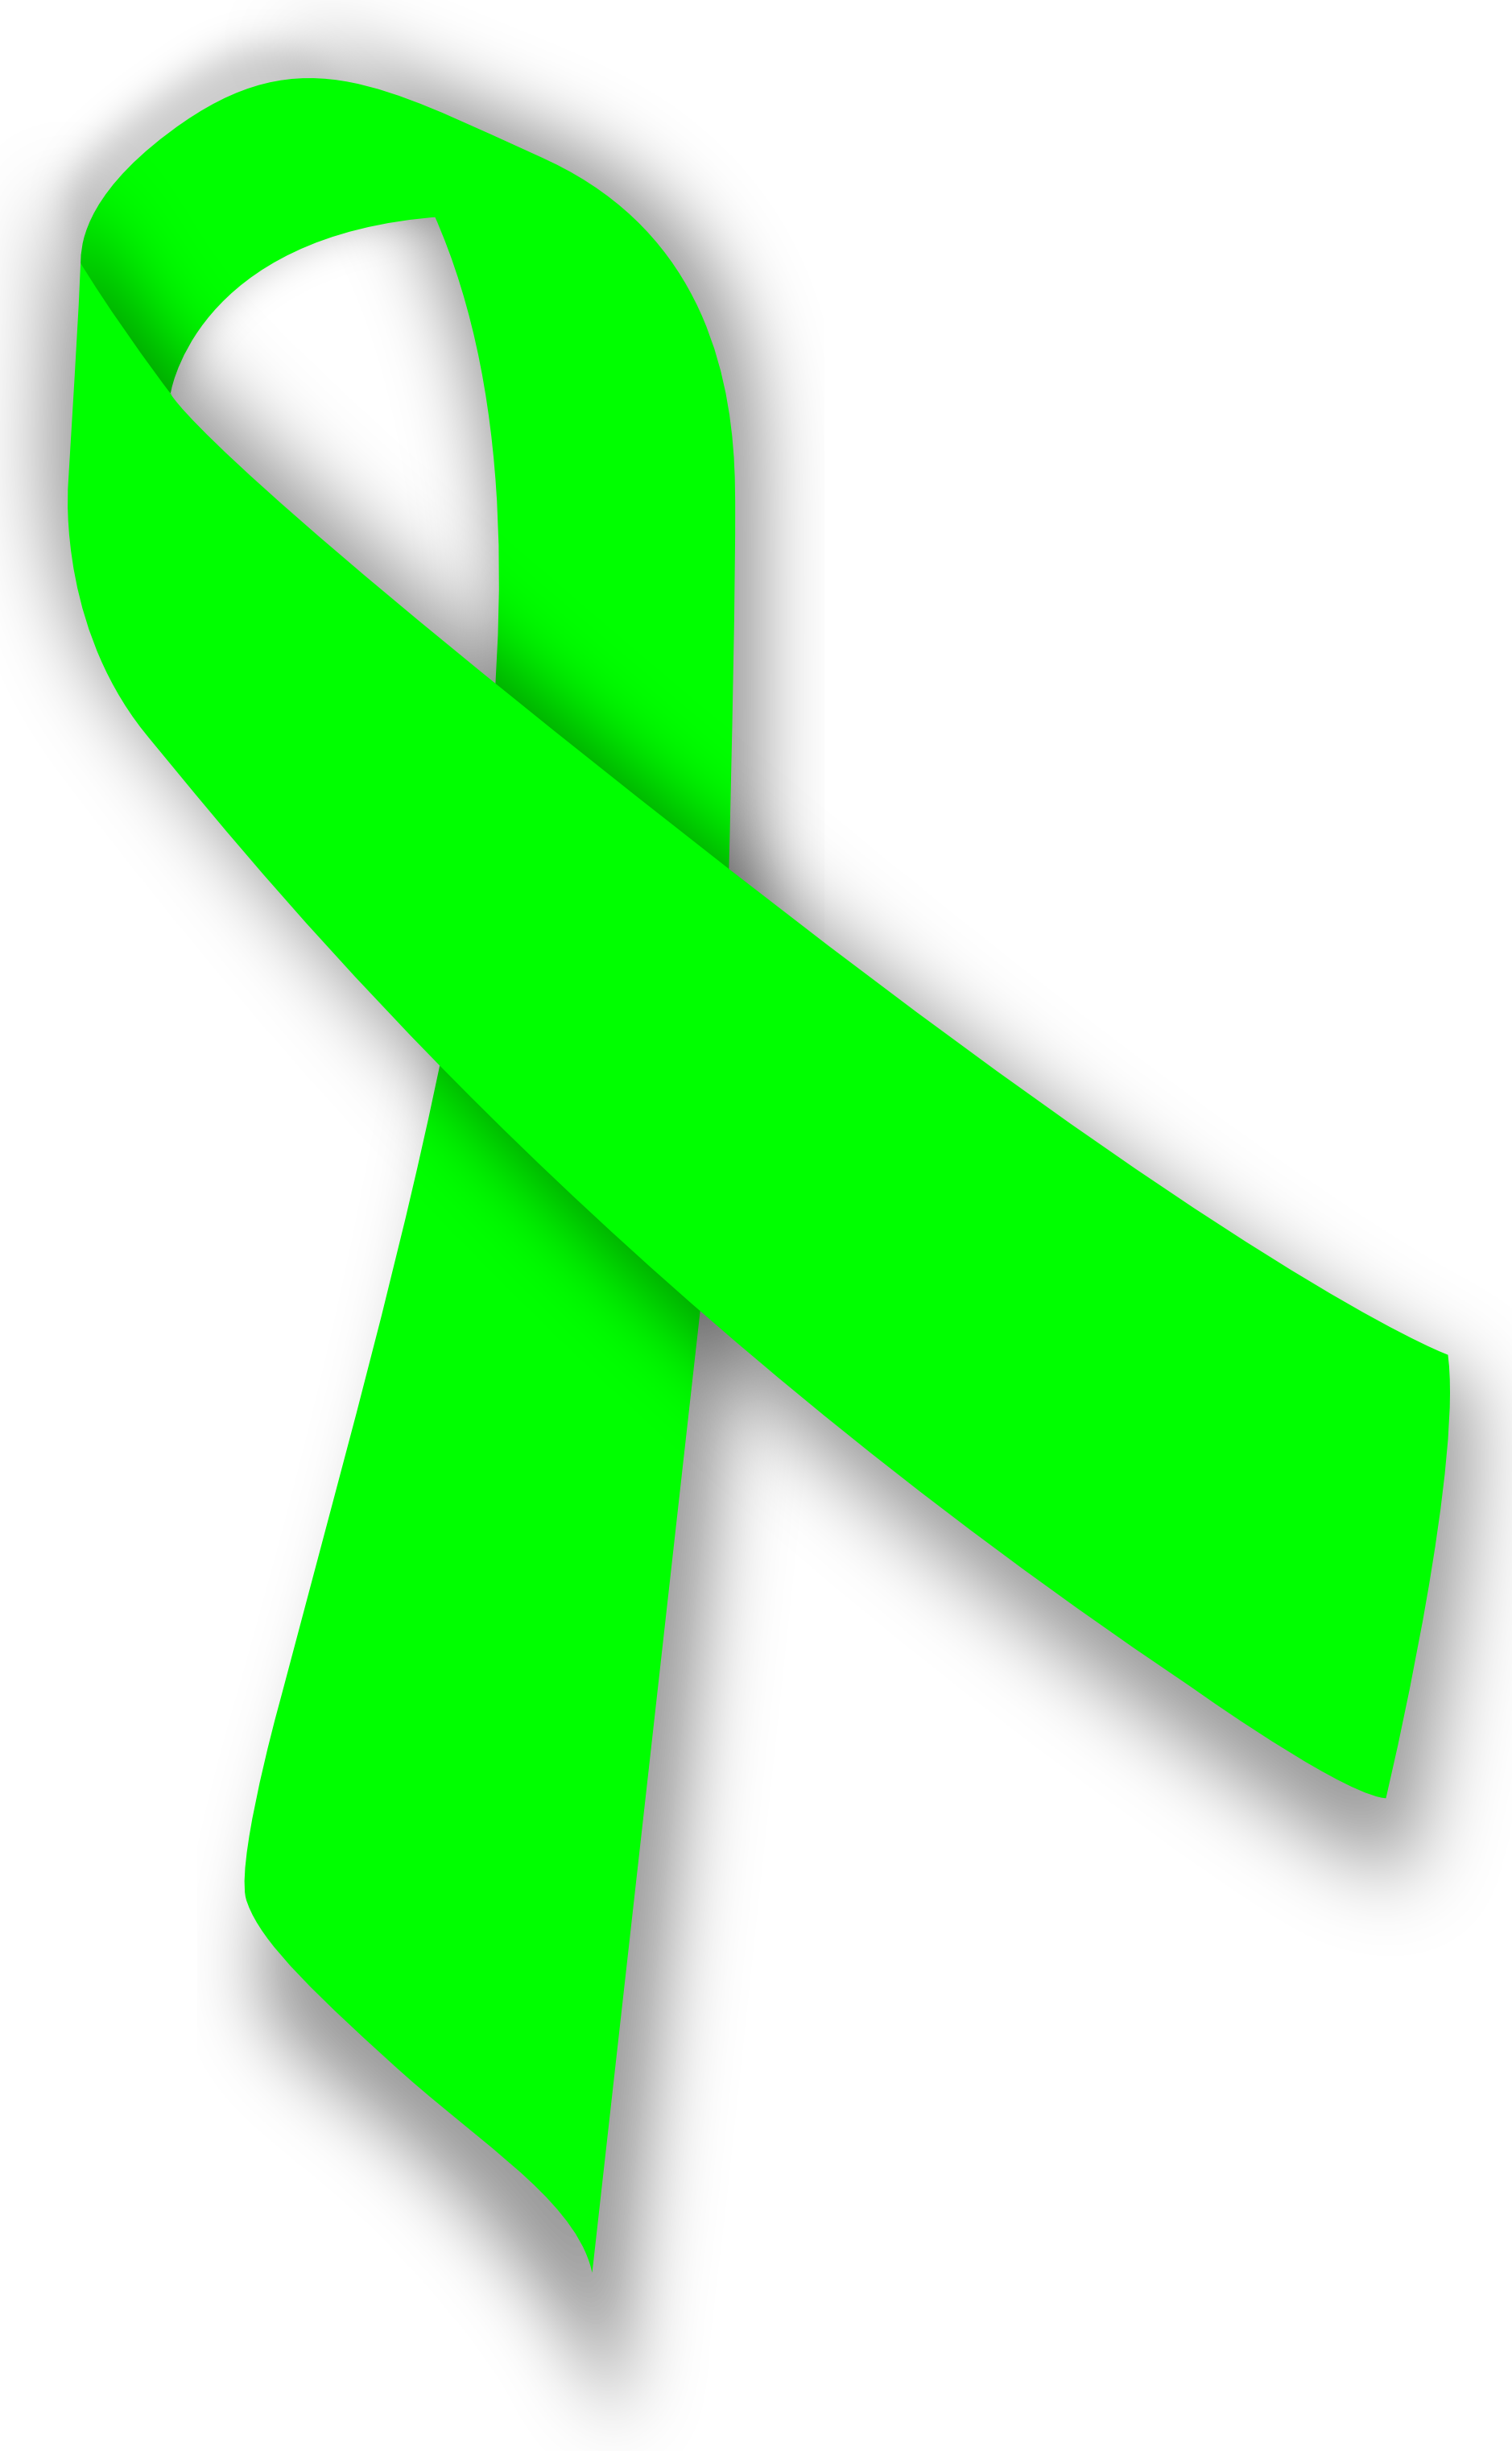 Green cancer ribbon clipart image freeuse download Green Cancer Ribbon - ClipArt Best image freeuse download